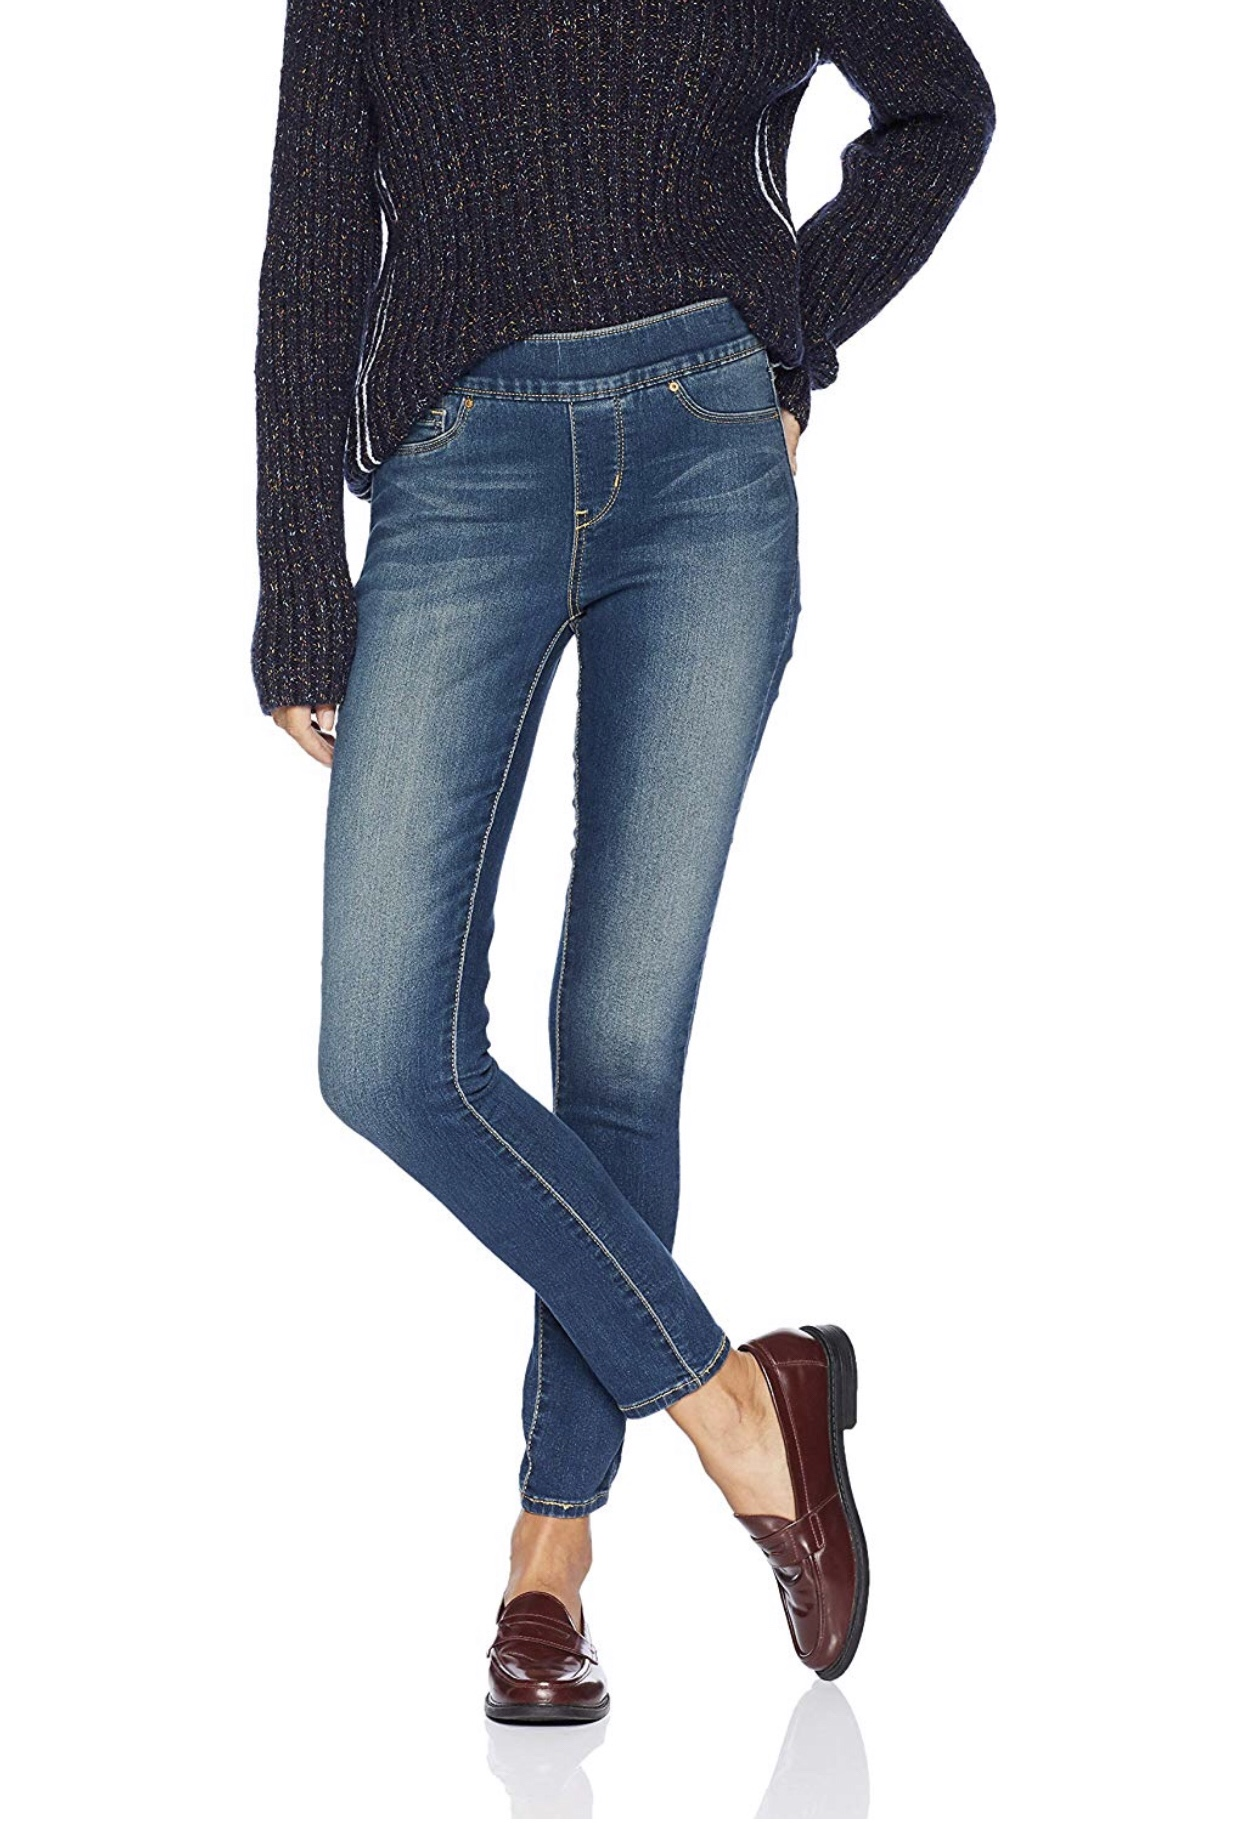 Friday Favorites - Amazon jeans - JK Style